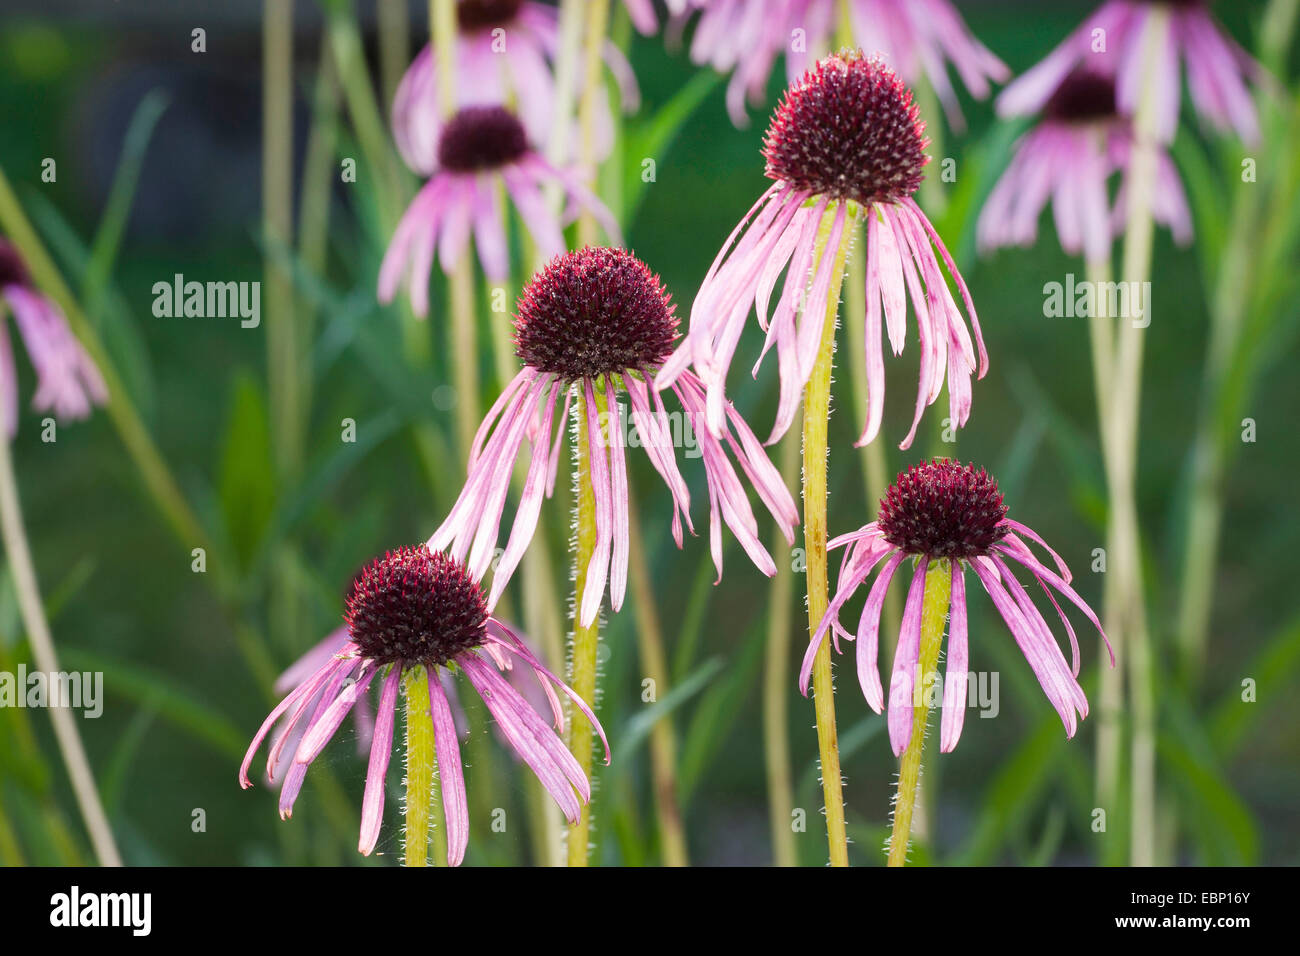 Narrowleaf coneflower, Narrow-leaved purple coneflower, Blacksamson echinacea (Echinacea angustifolia, Brauneria - Stock Image